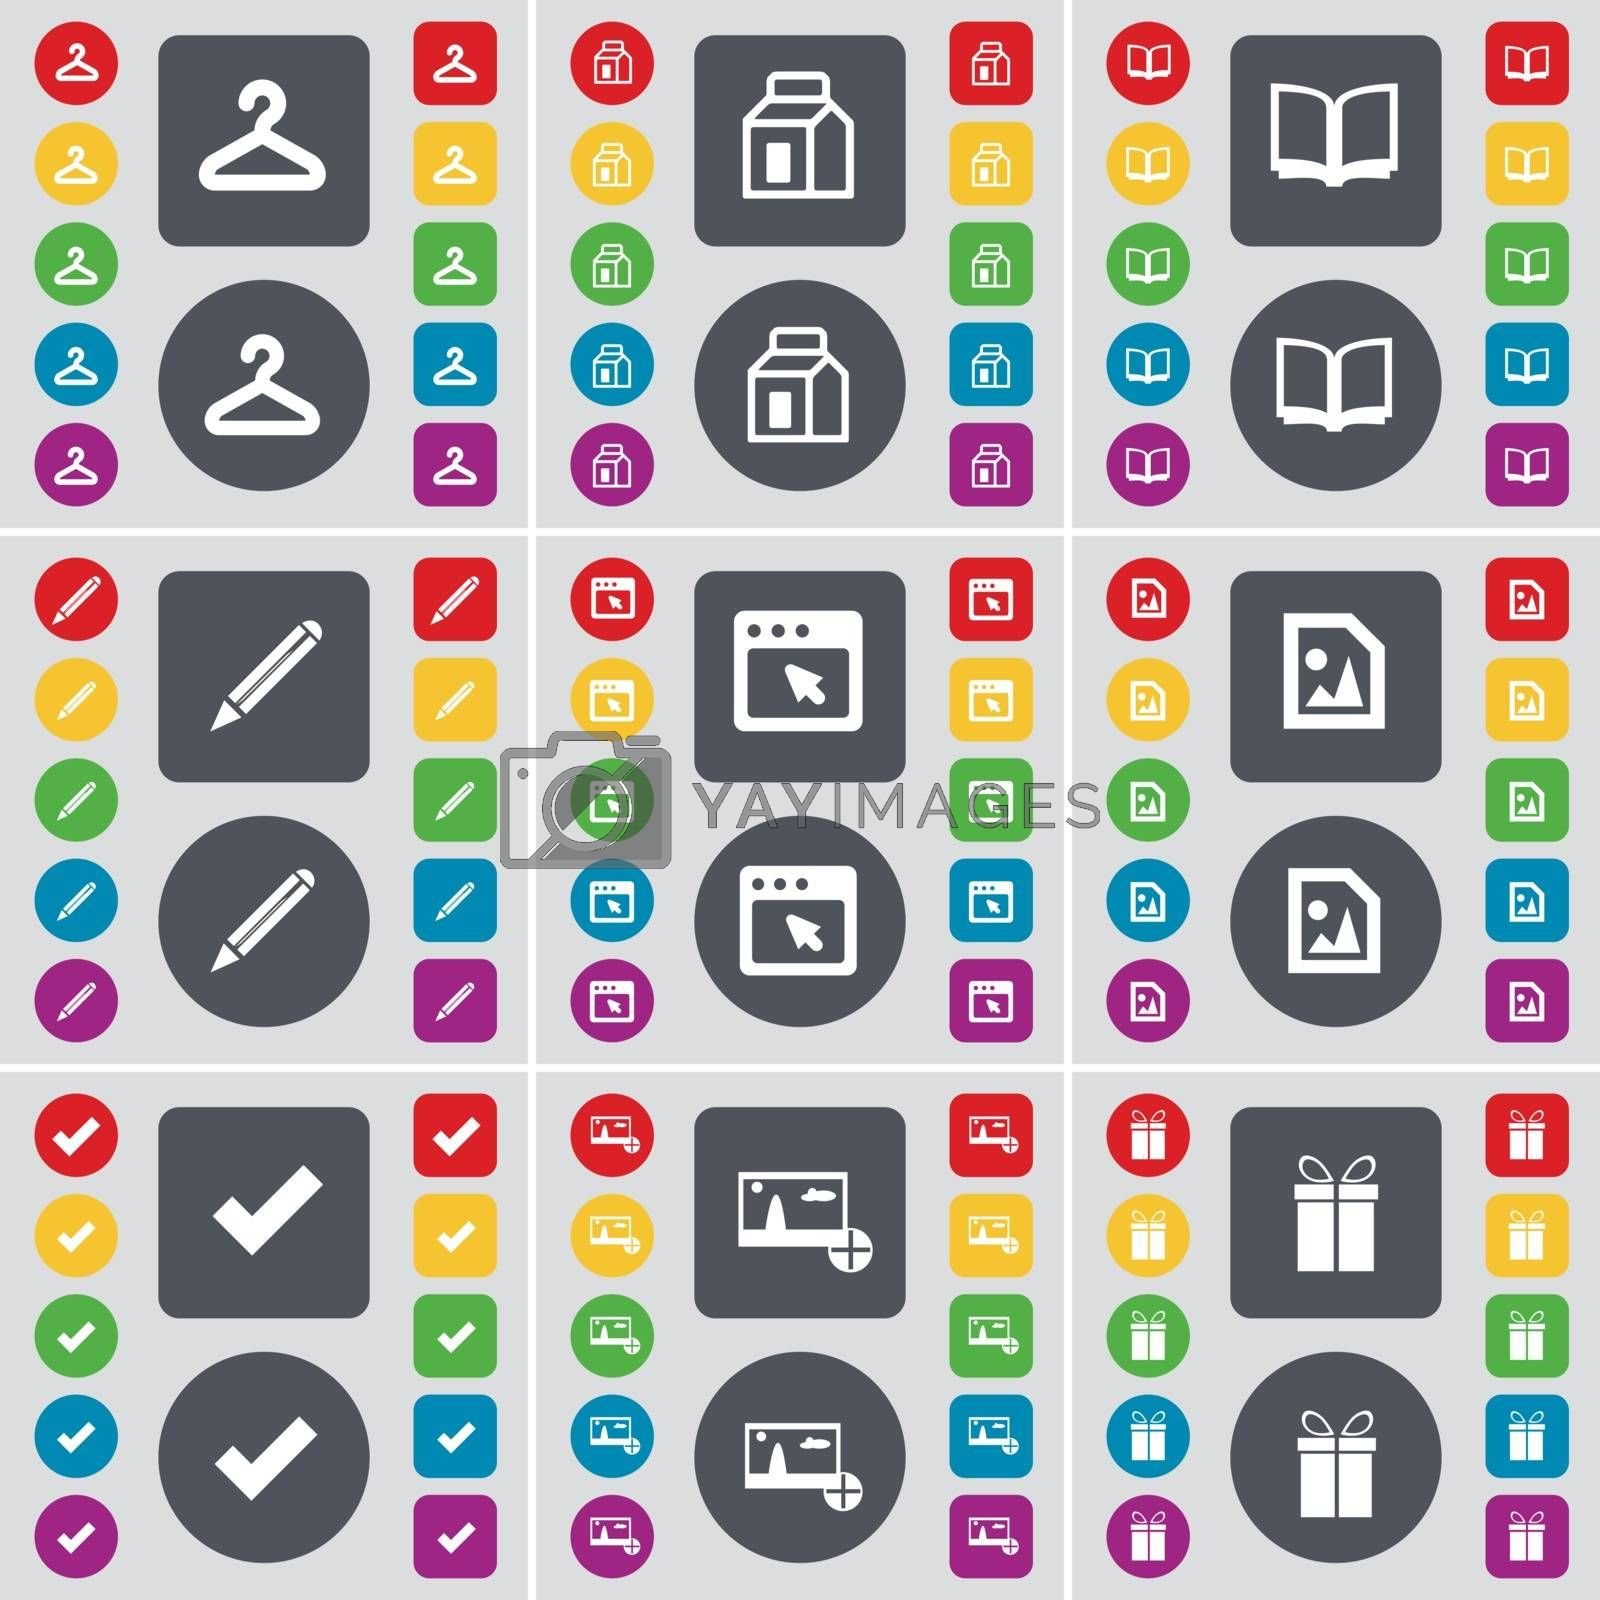 Royalty free image of Hanger, Packing, Book, Pencil, Window, Media file, Tick, Picture, Gift icon symbol. A large set of flat, colored buttons for your design. Vector by serhii_lohvyniuk